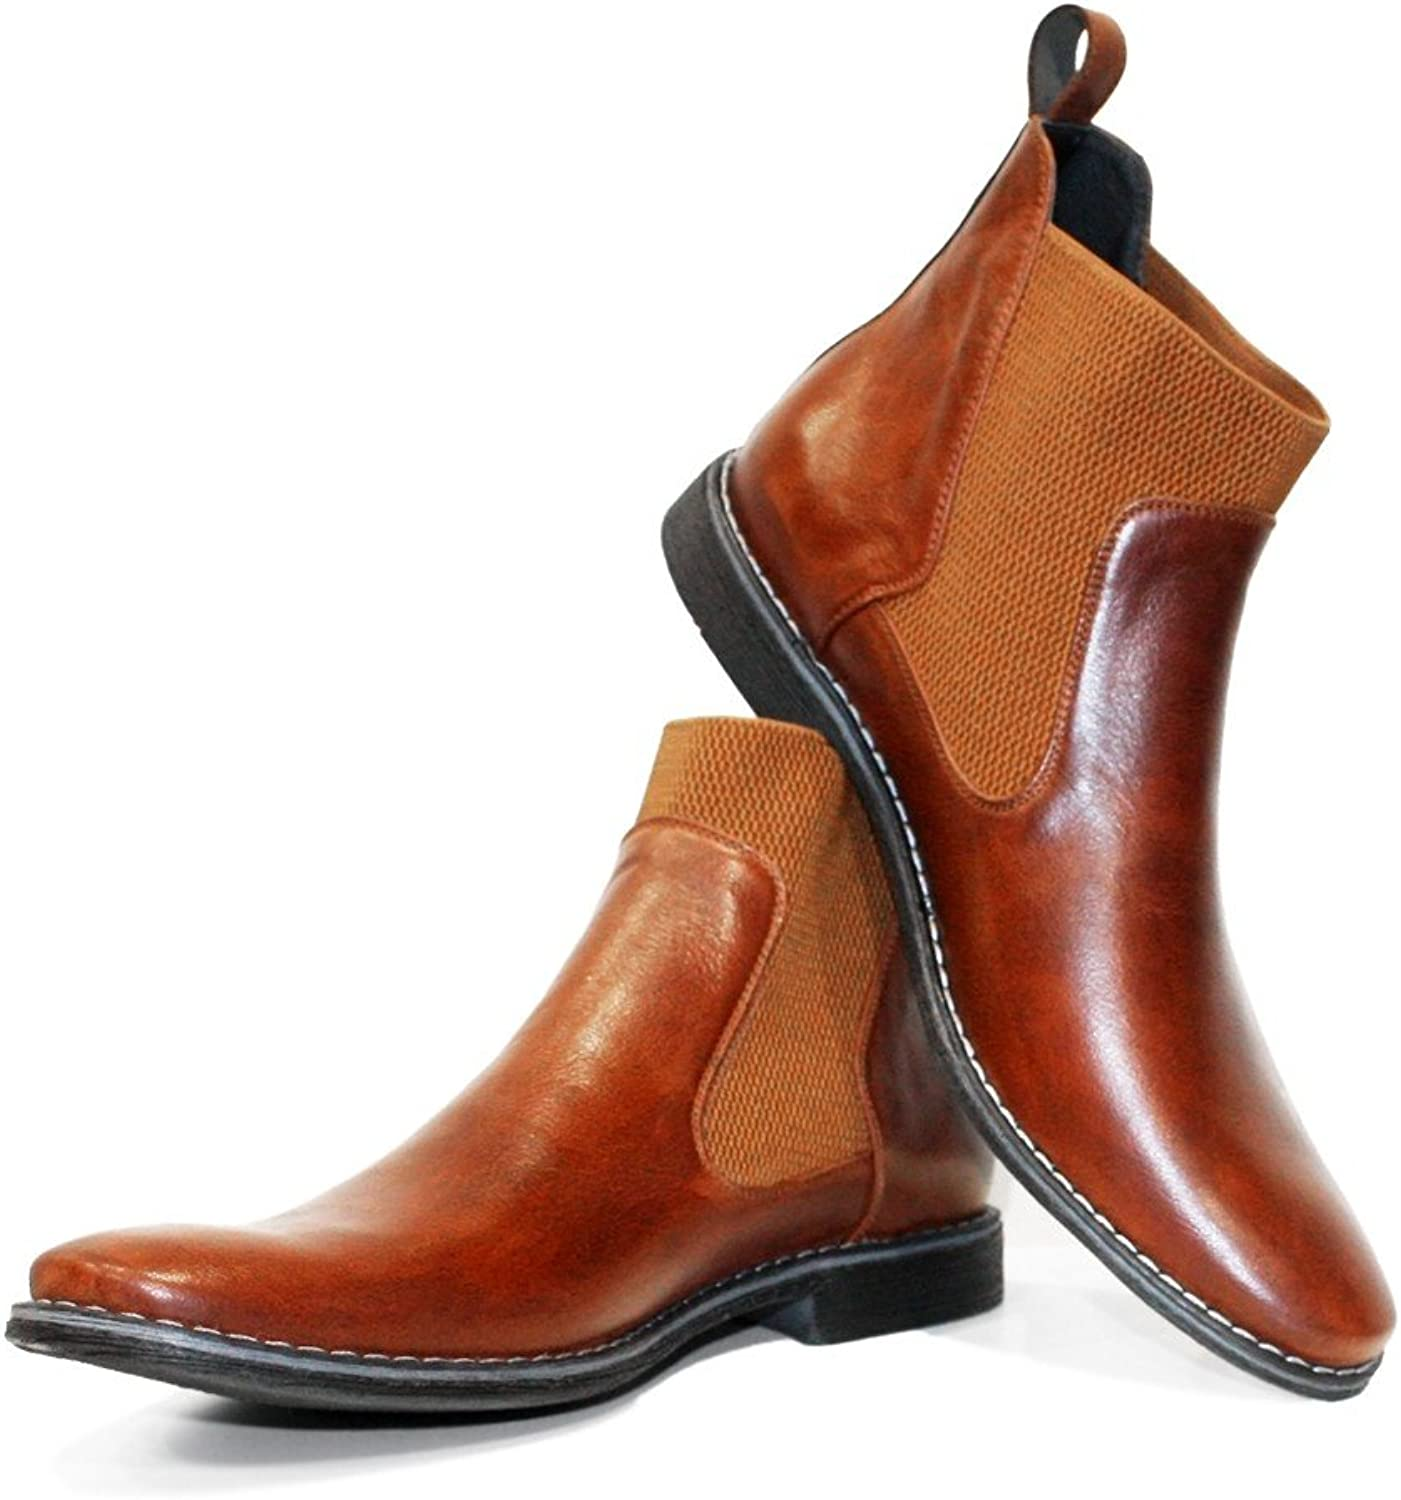 Peppeshoes Modello Kone - Handmade Italian Leather Mens color Brown Ankle Chelsea Boots - Cowhide Smooth Leather - Slip-On